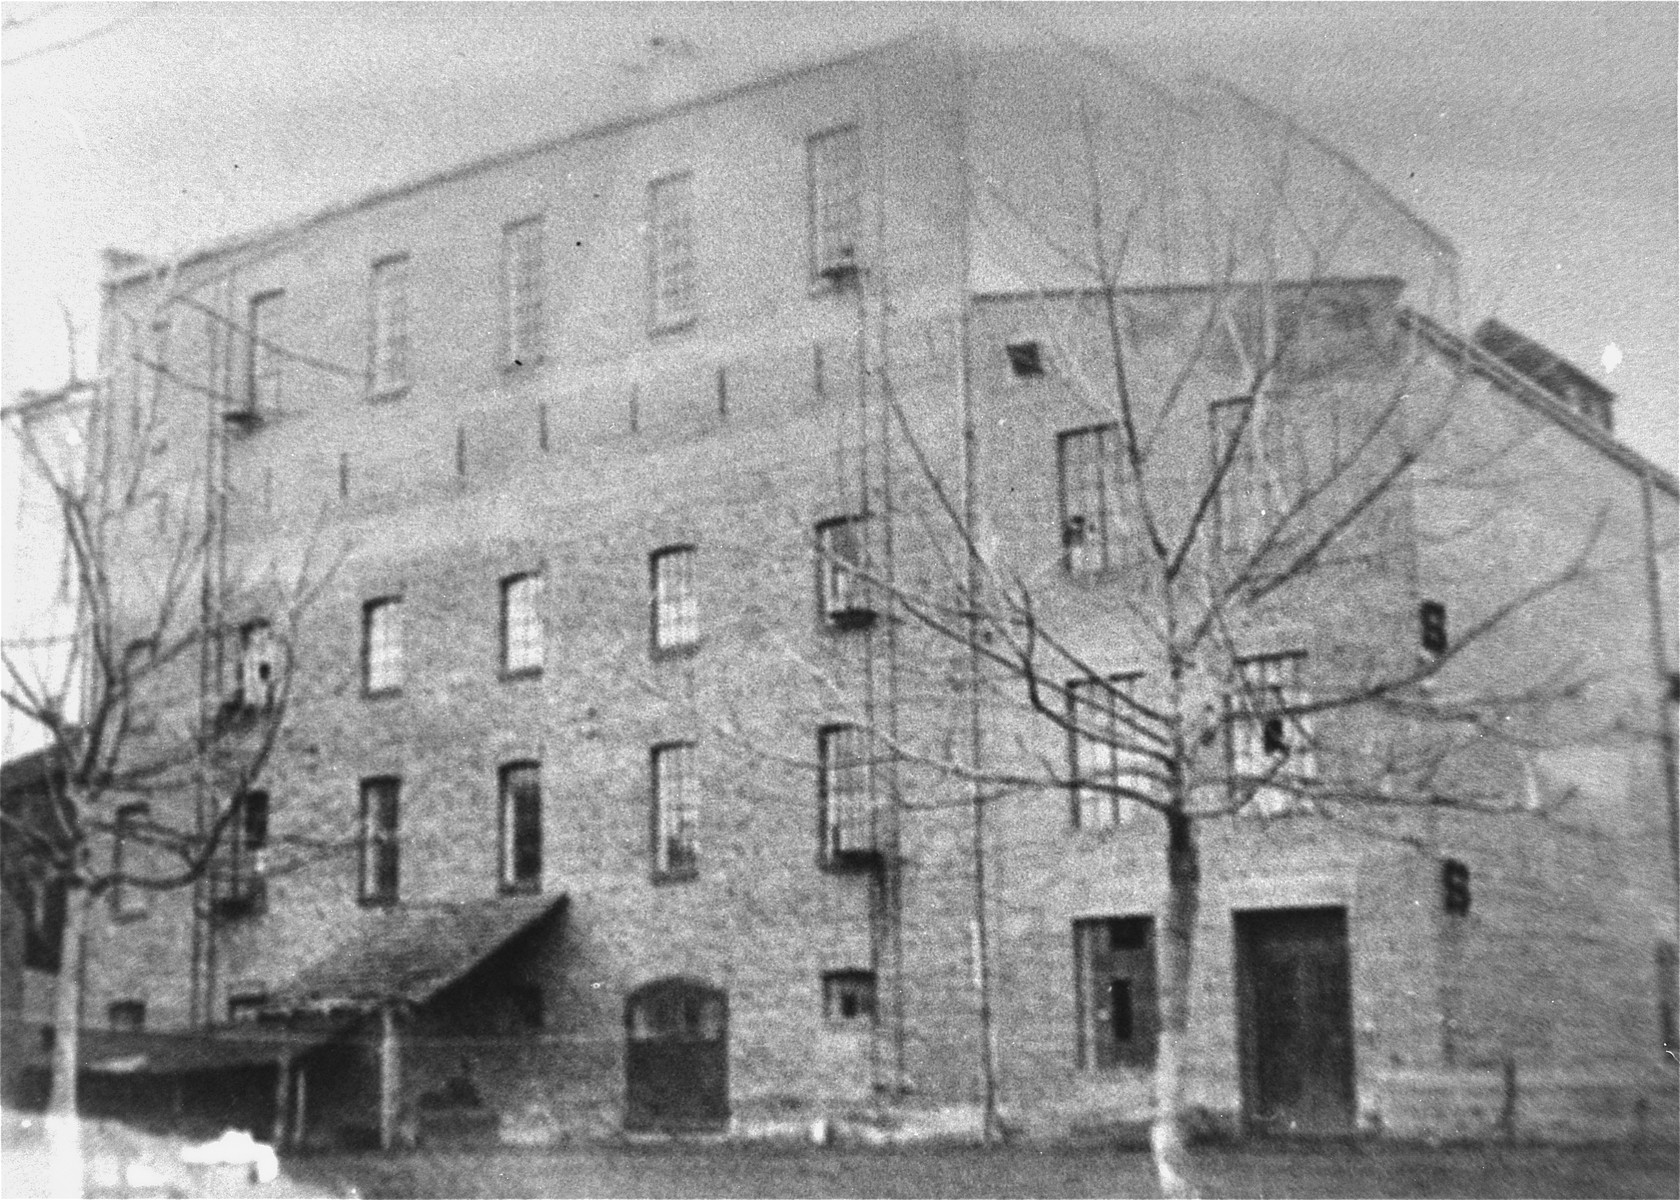 View of the flour mill on Janko Veselinovic Street in Sabac, where the Jewish refugees of the Kladova transport were housed.